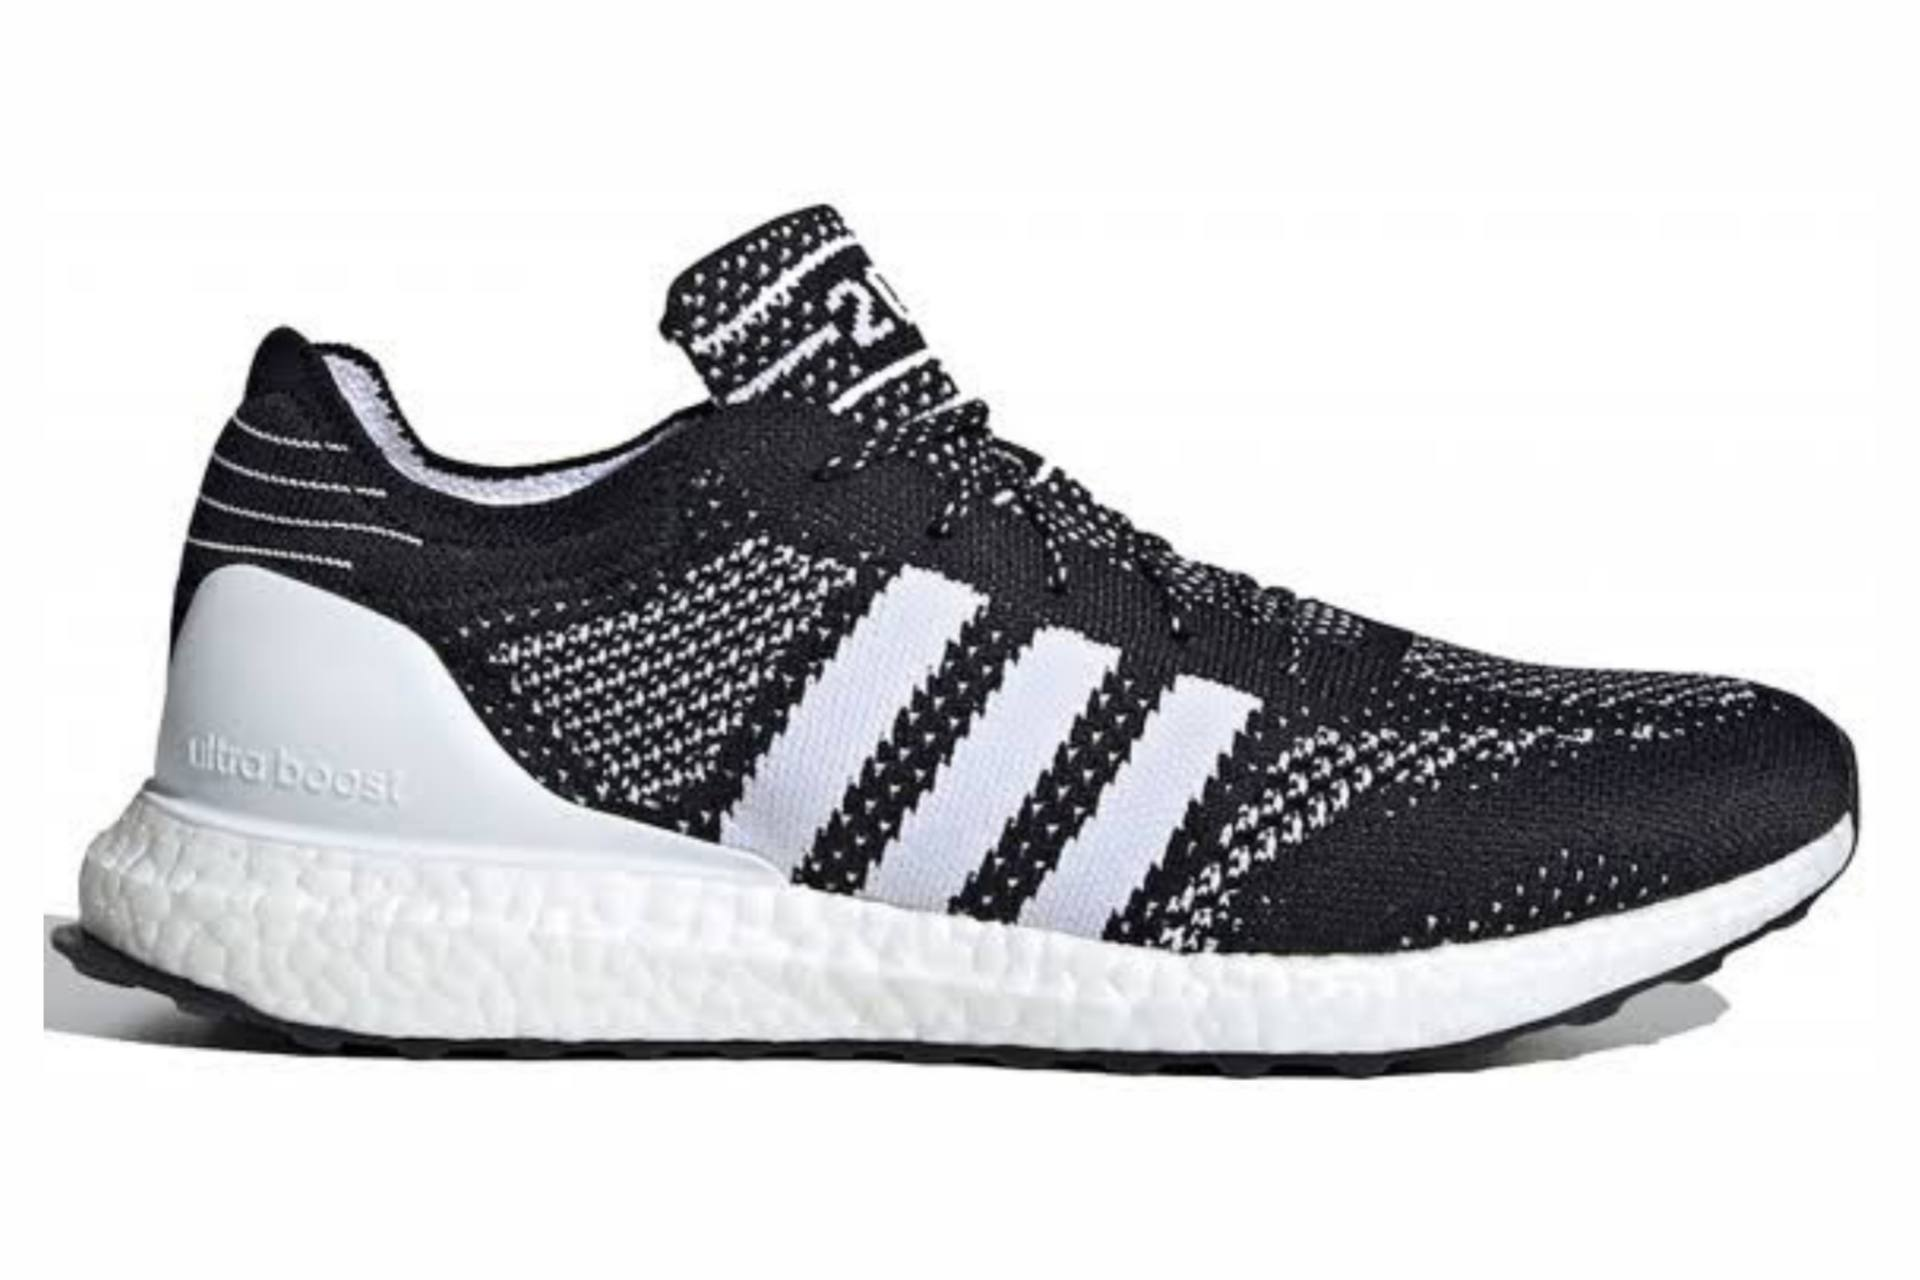 Does Adidas make Sneakers from ocean plastic?